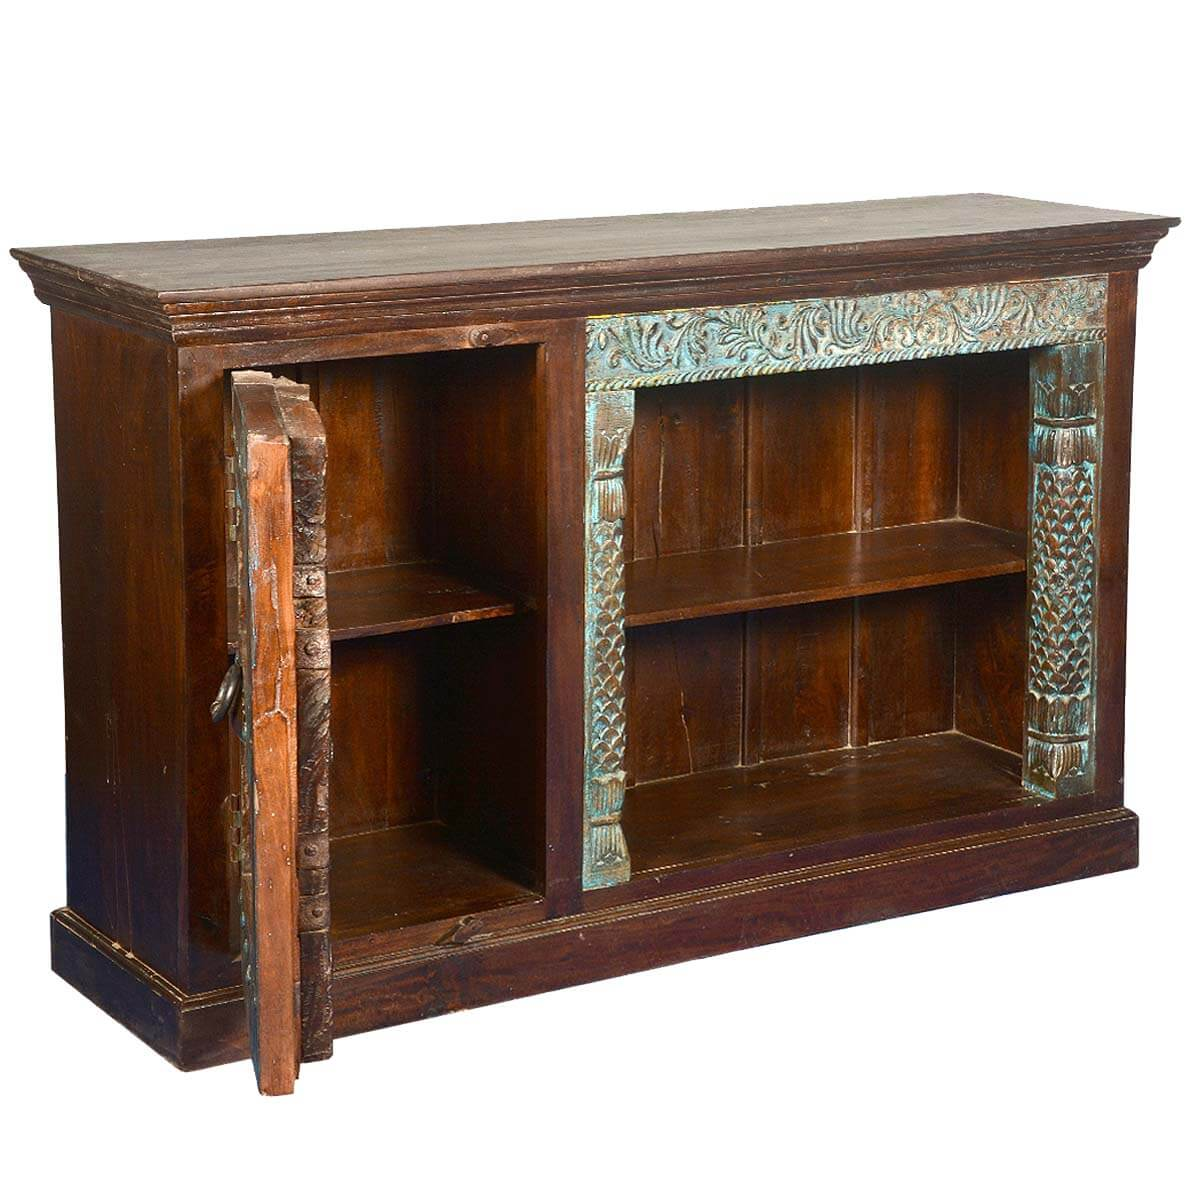 Rustic fusion teak mango wood tv stand entertainment console Rustic tv stands